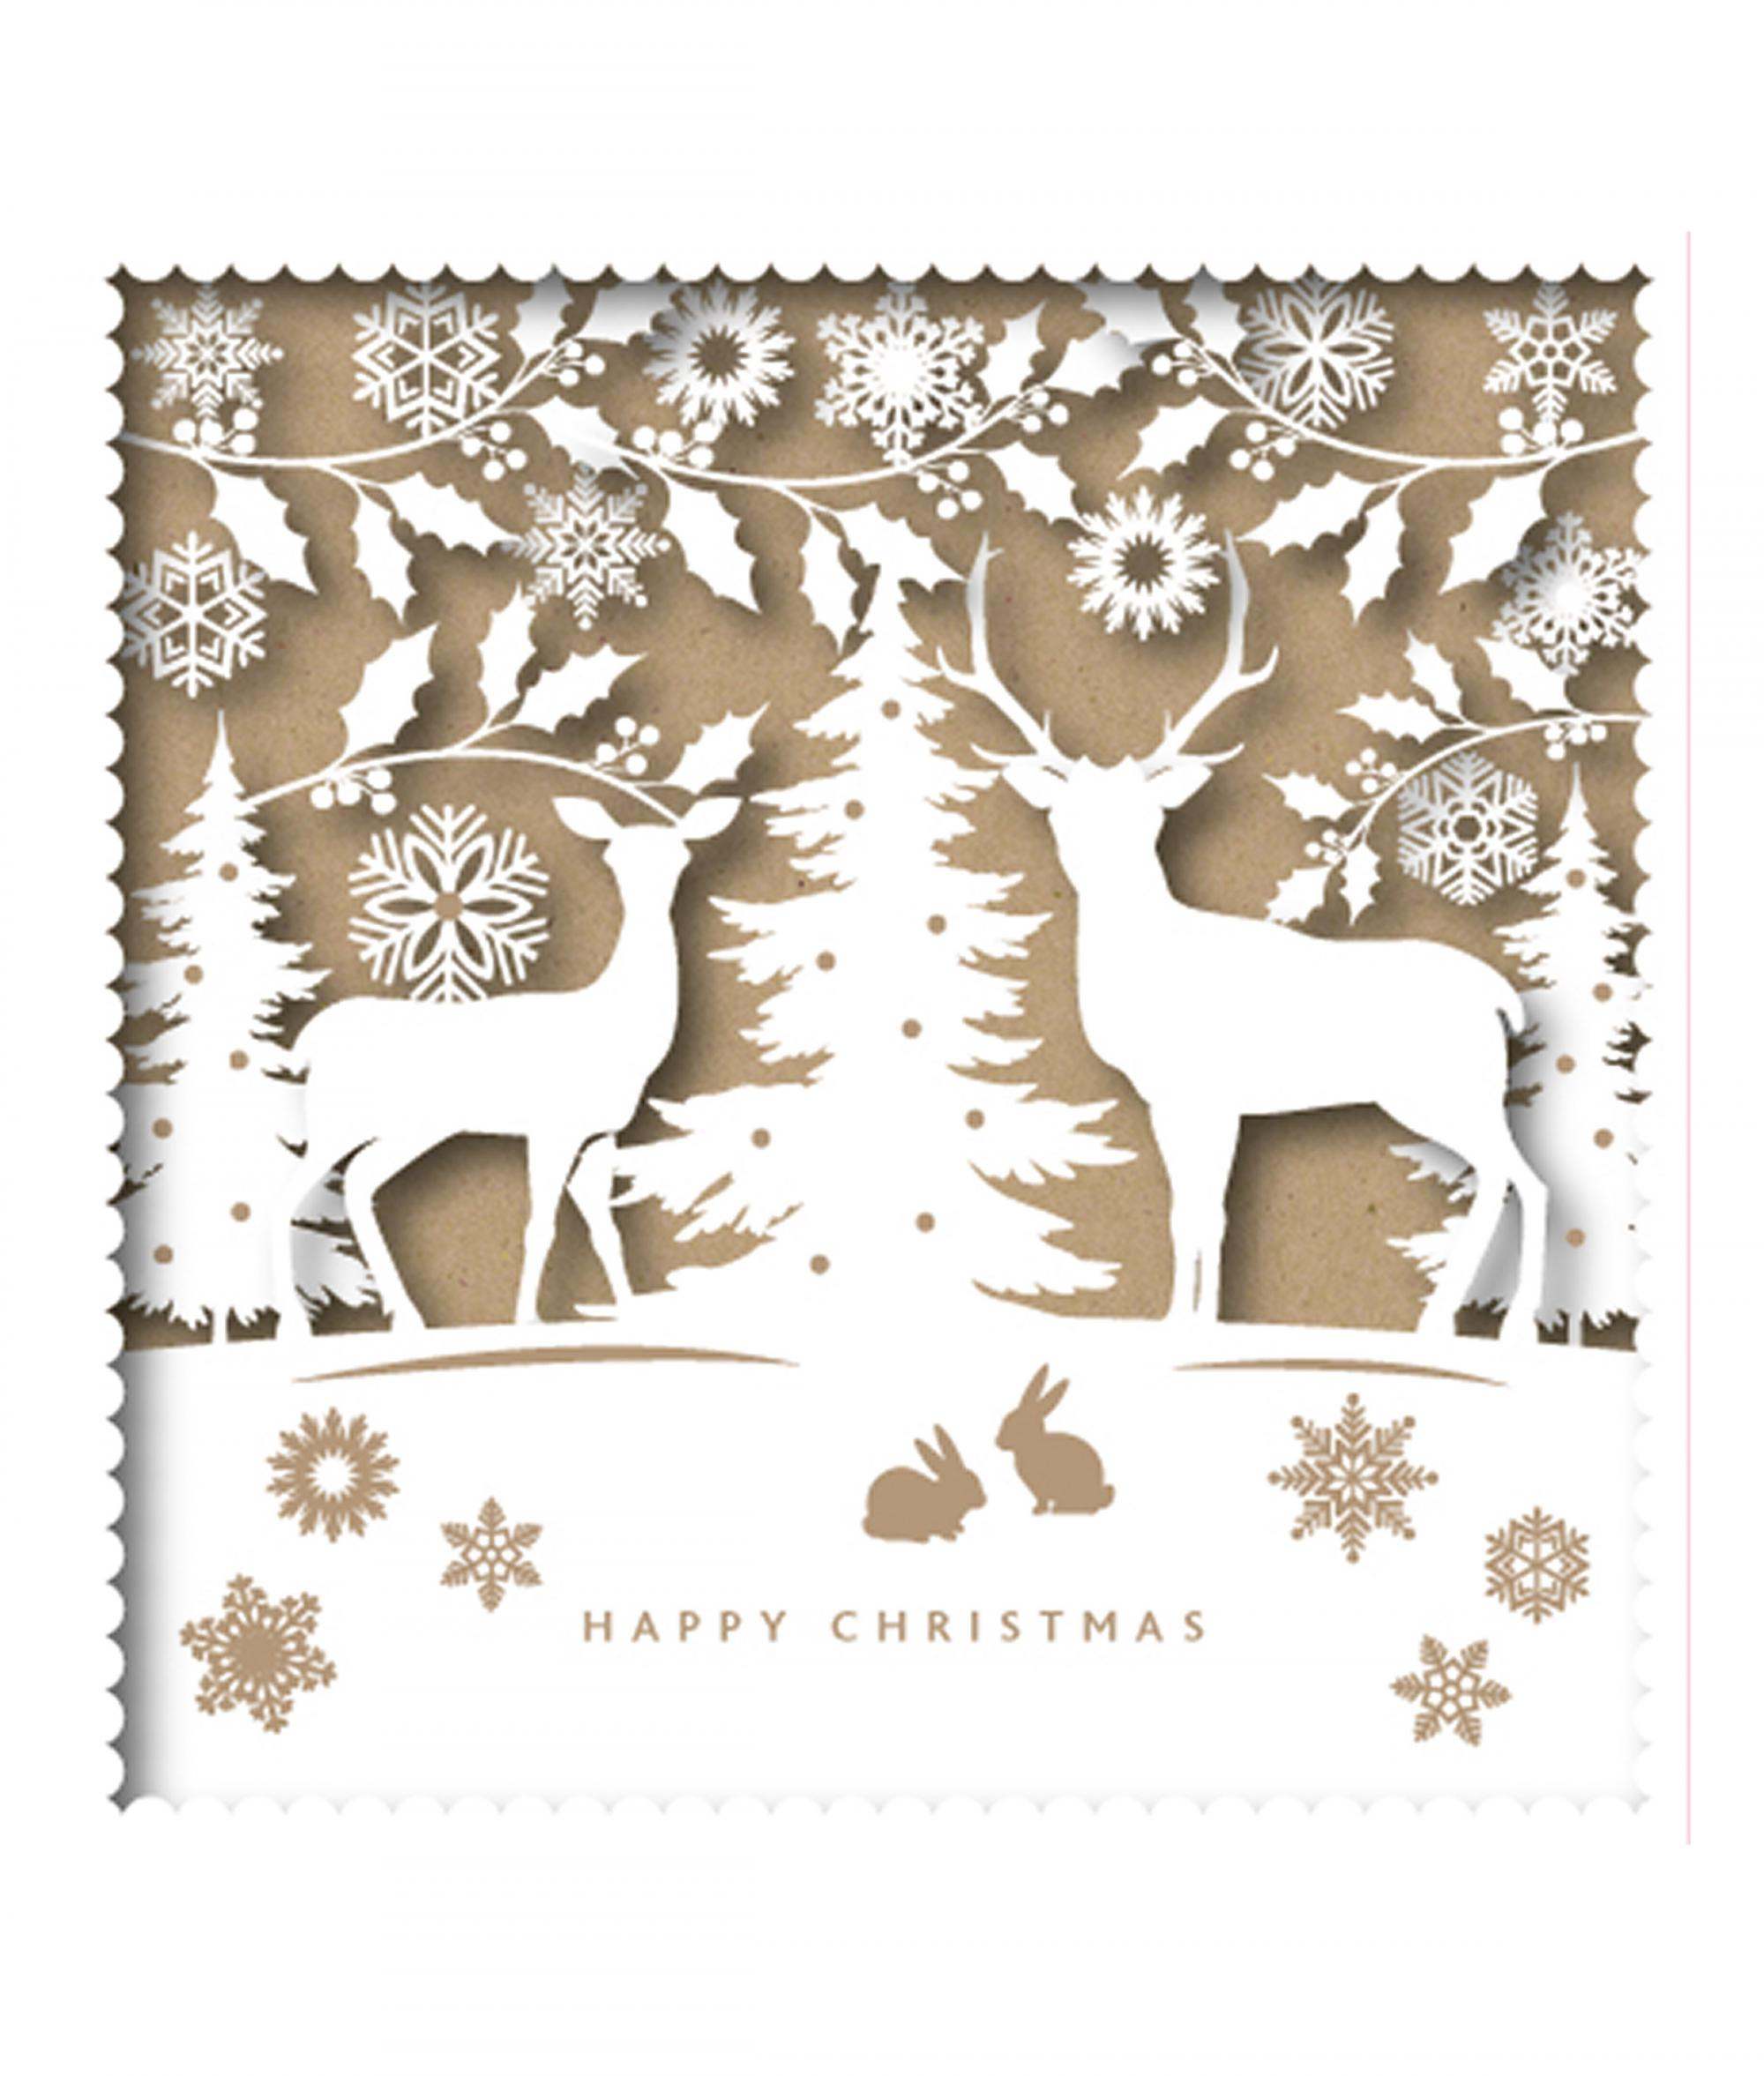 Silhouette Reindeer Christmas Card - Pack of 10 | Cancer Research ...